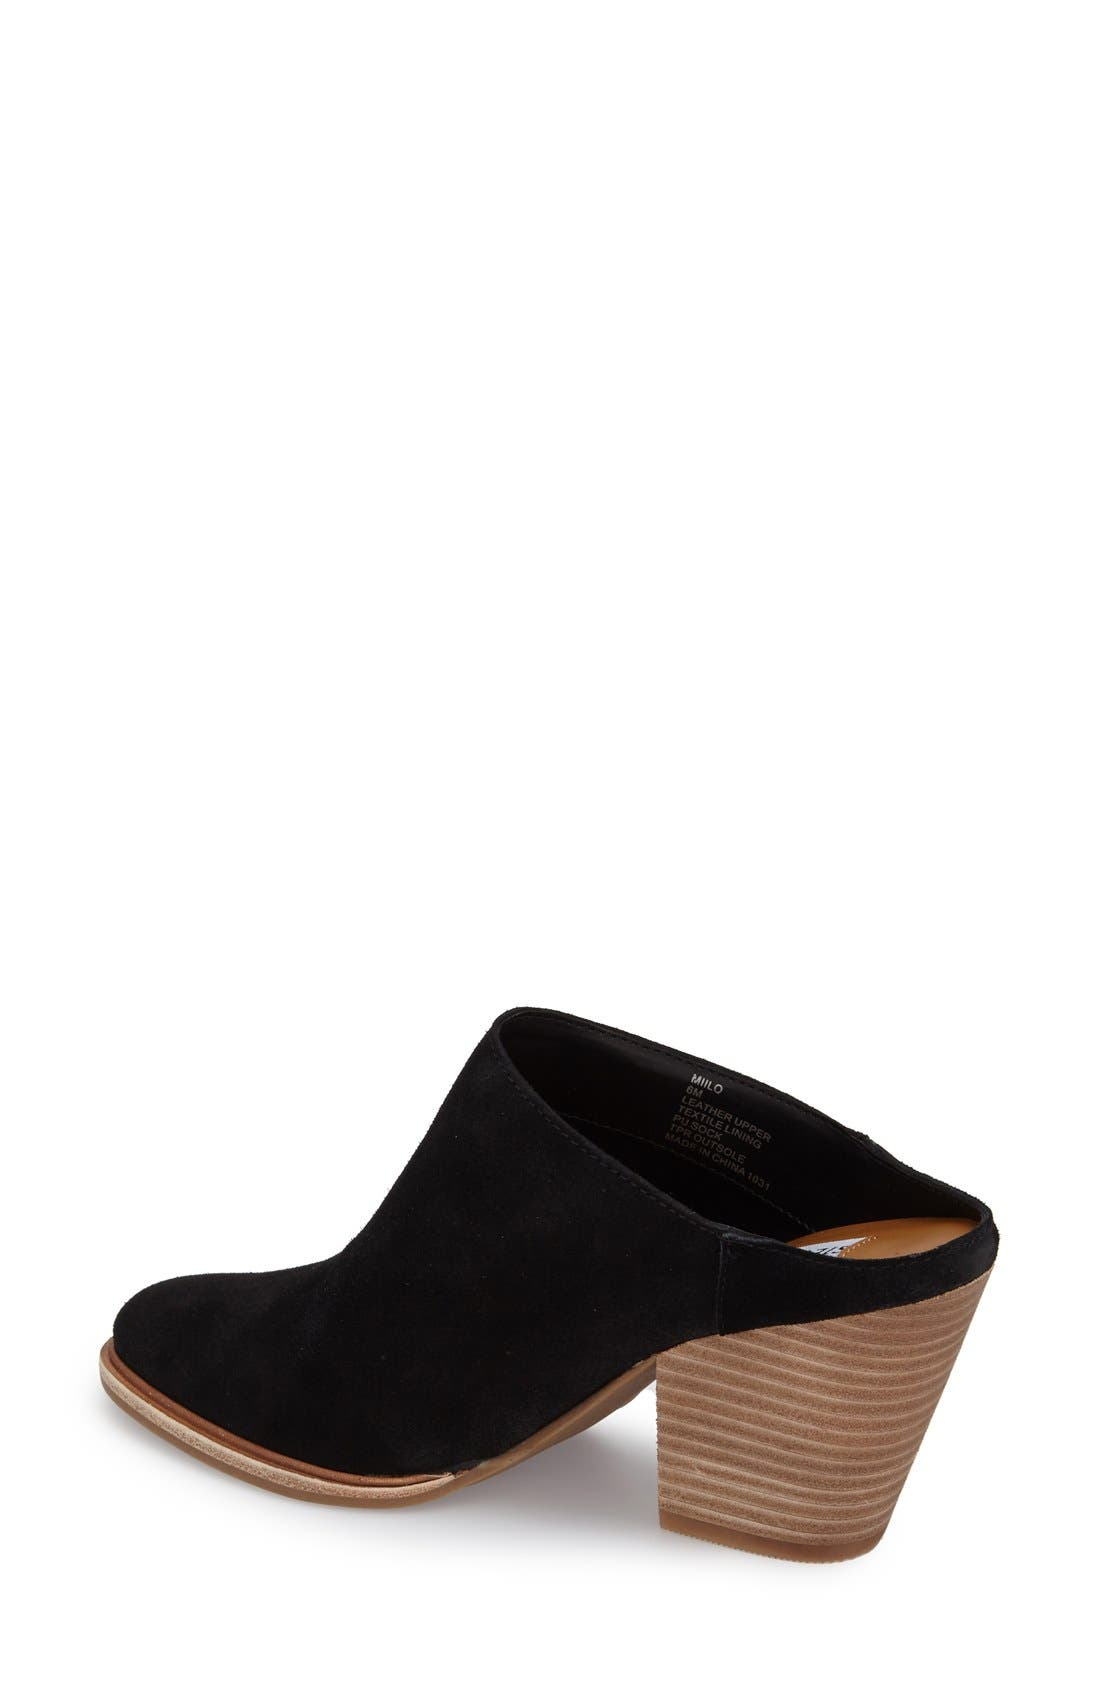 Alternate Image 2  - Steve Madden 'Miilo' Clog (Women)